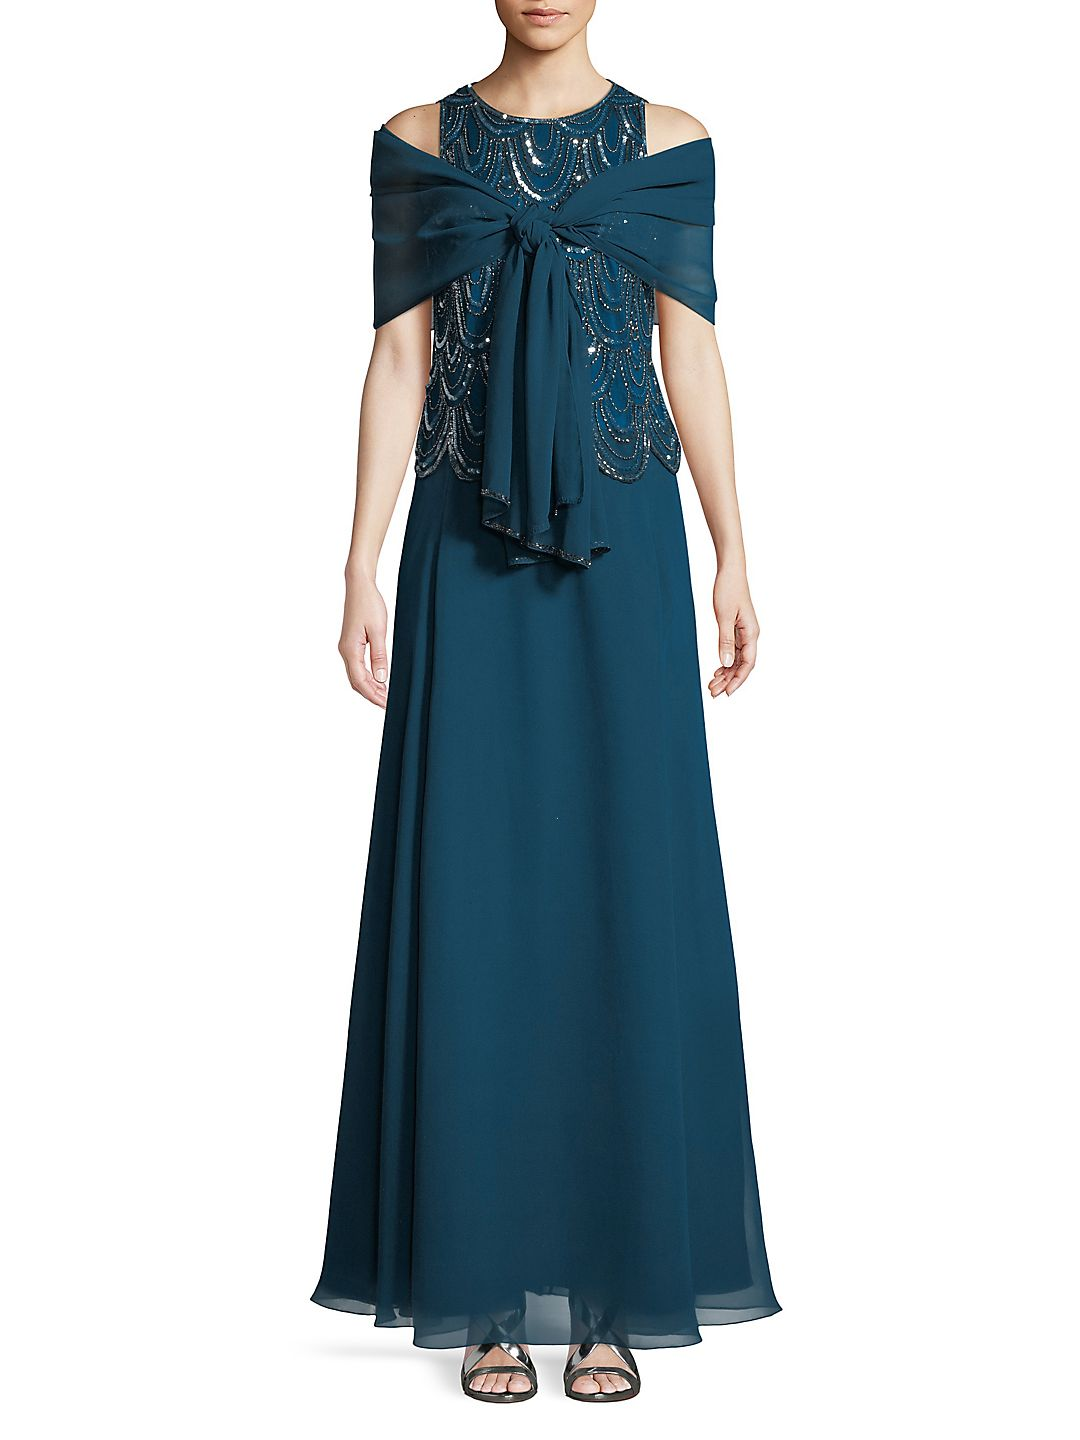 2-in-1 Embellished Floor-Length Gown and Scarf